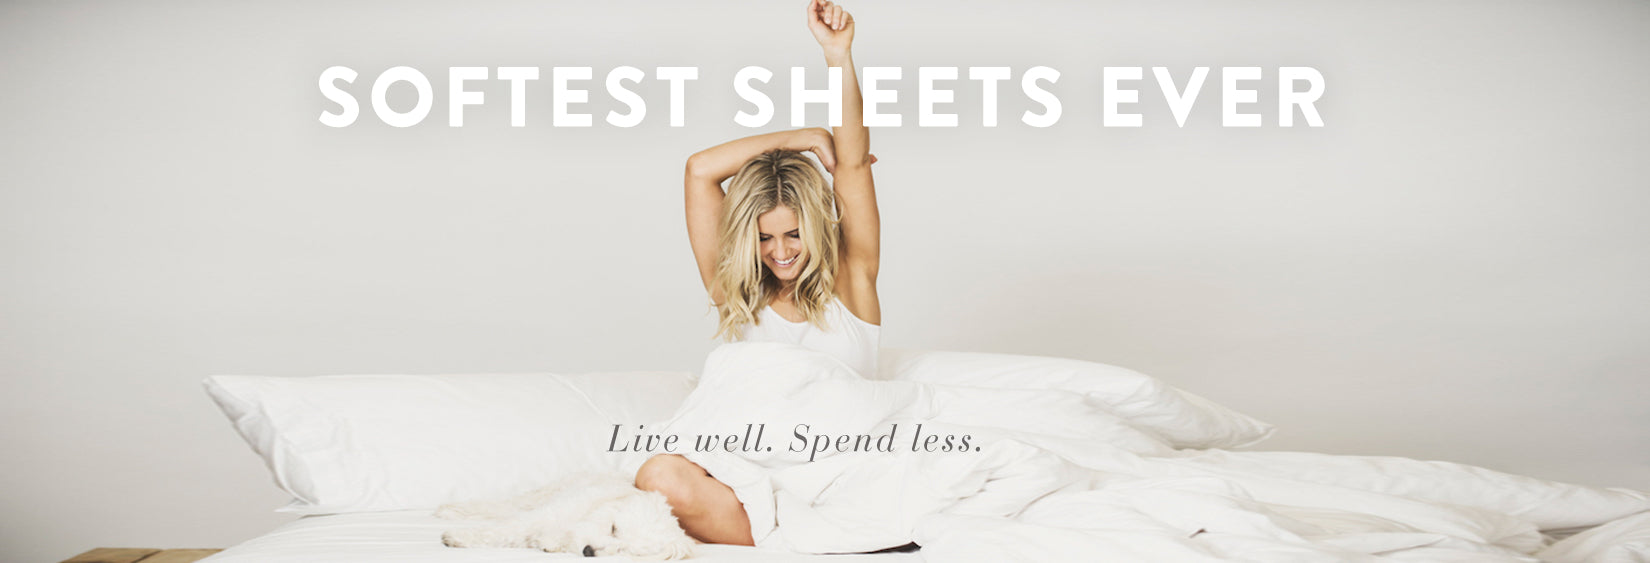 SOL Organics Bedding, Organic Cotton Bed Linens, Softest Sheets Ever